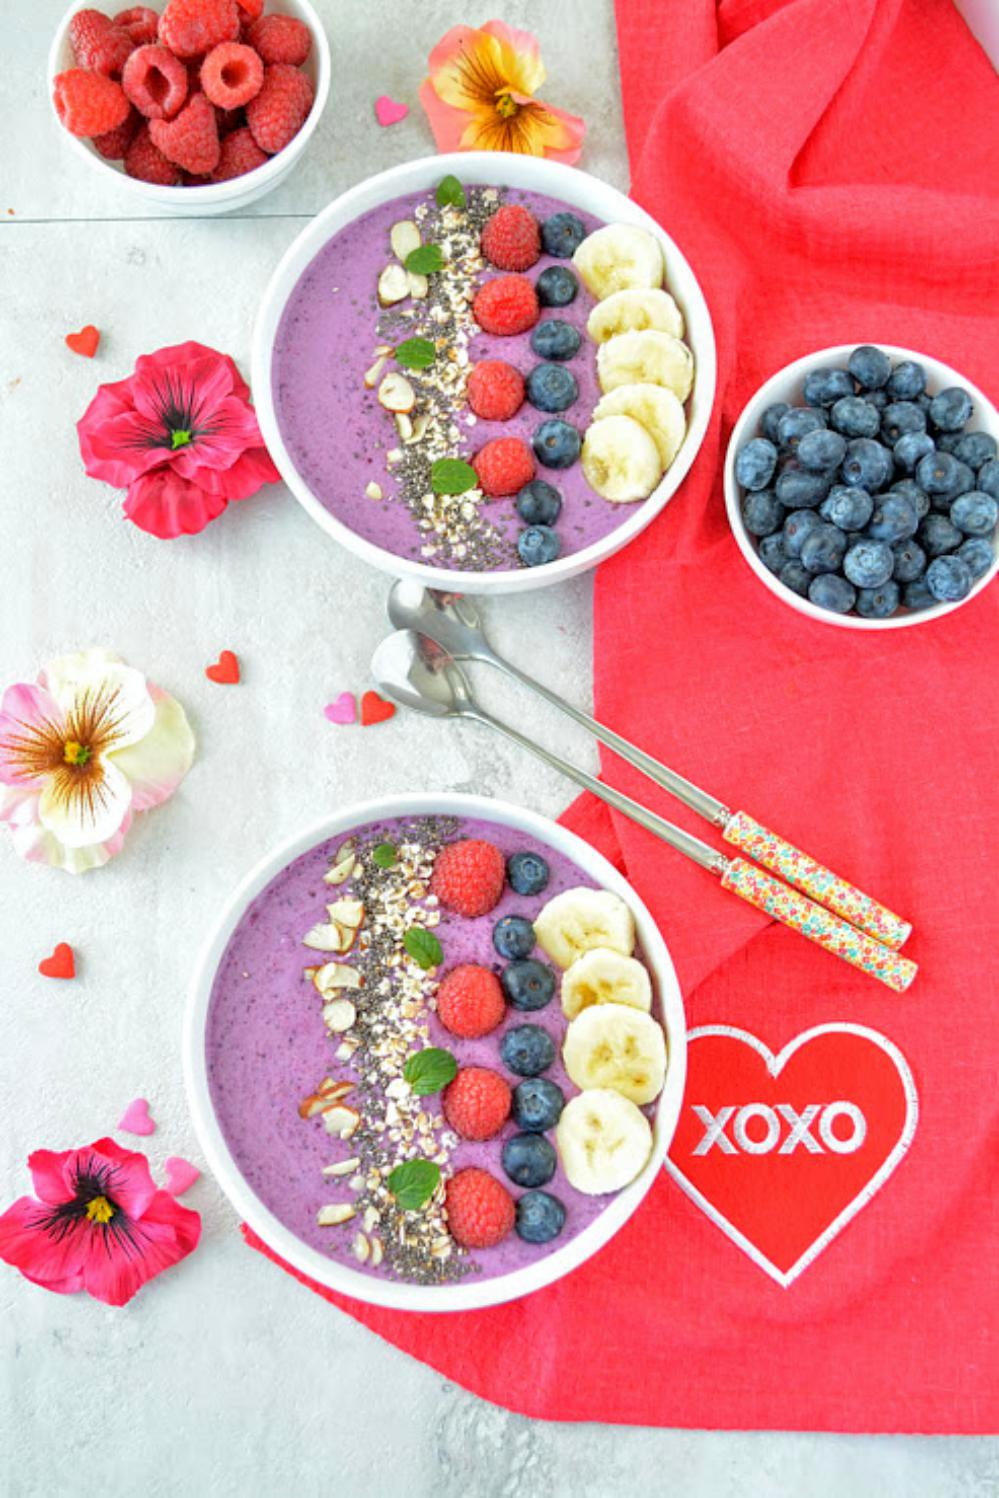 healthy-blueberry-smoothie-recipe-6 (1)_Fotor